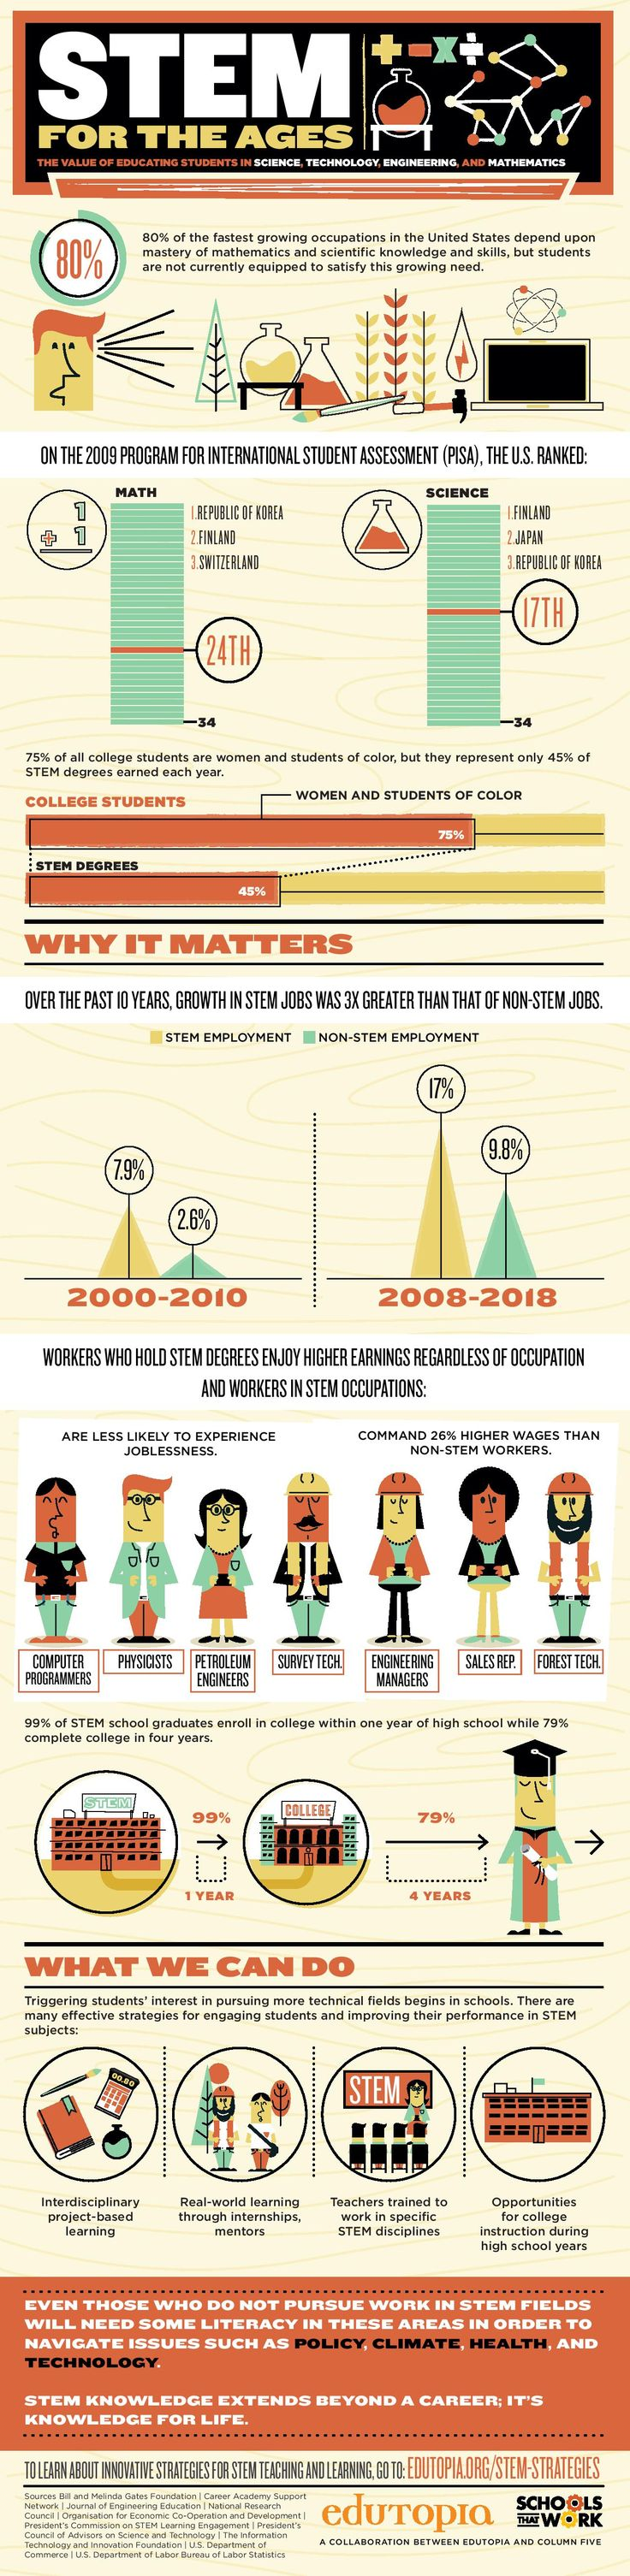 The Value of STEM Education Infographic - http://elearninginfographics.com/the-value-of-stem-education-infographic/